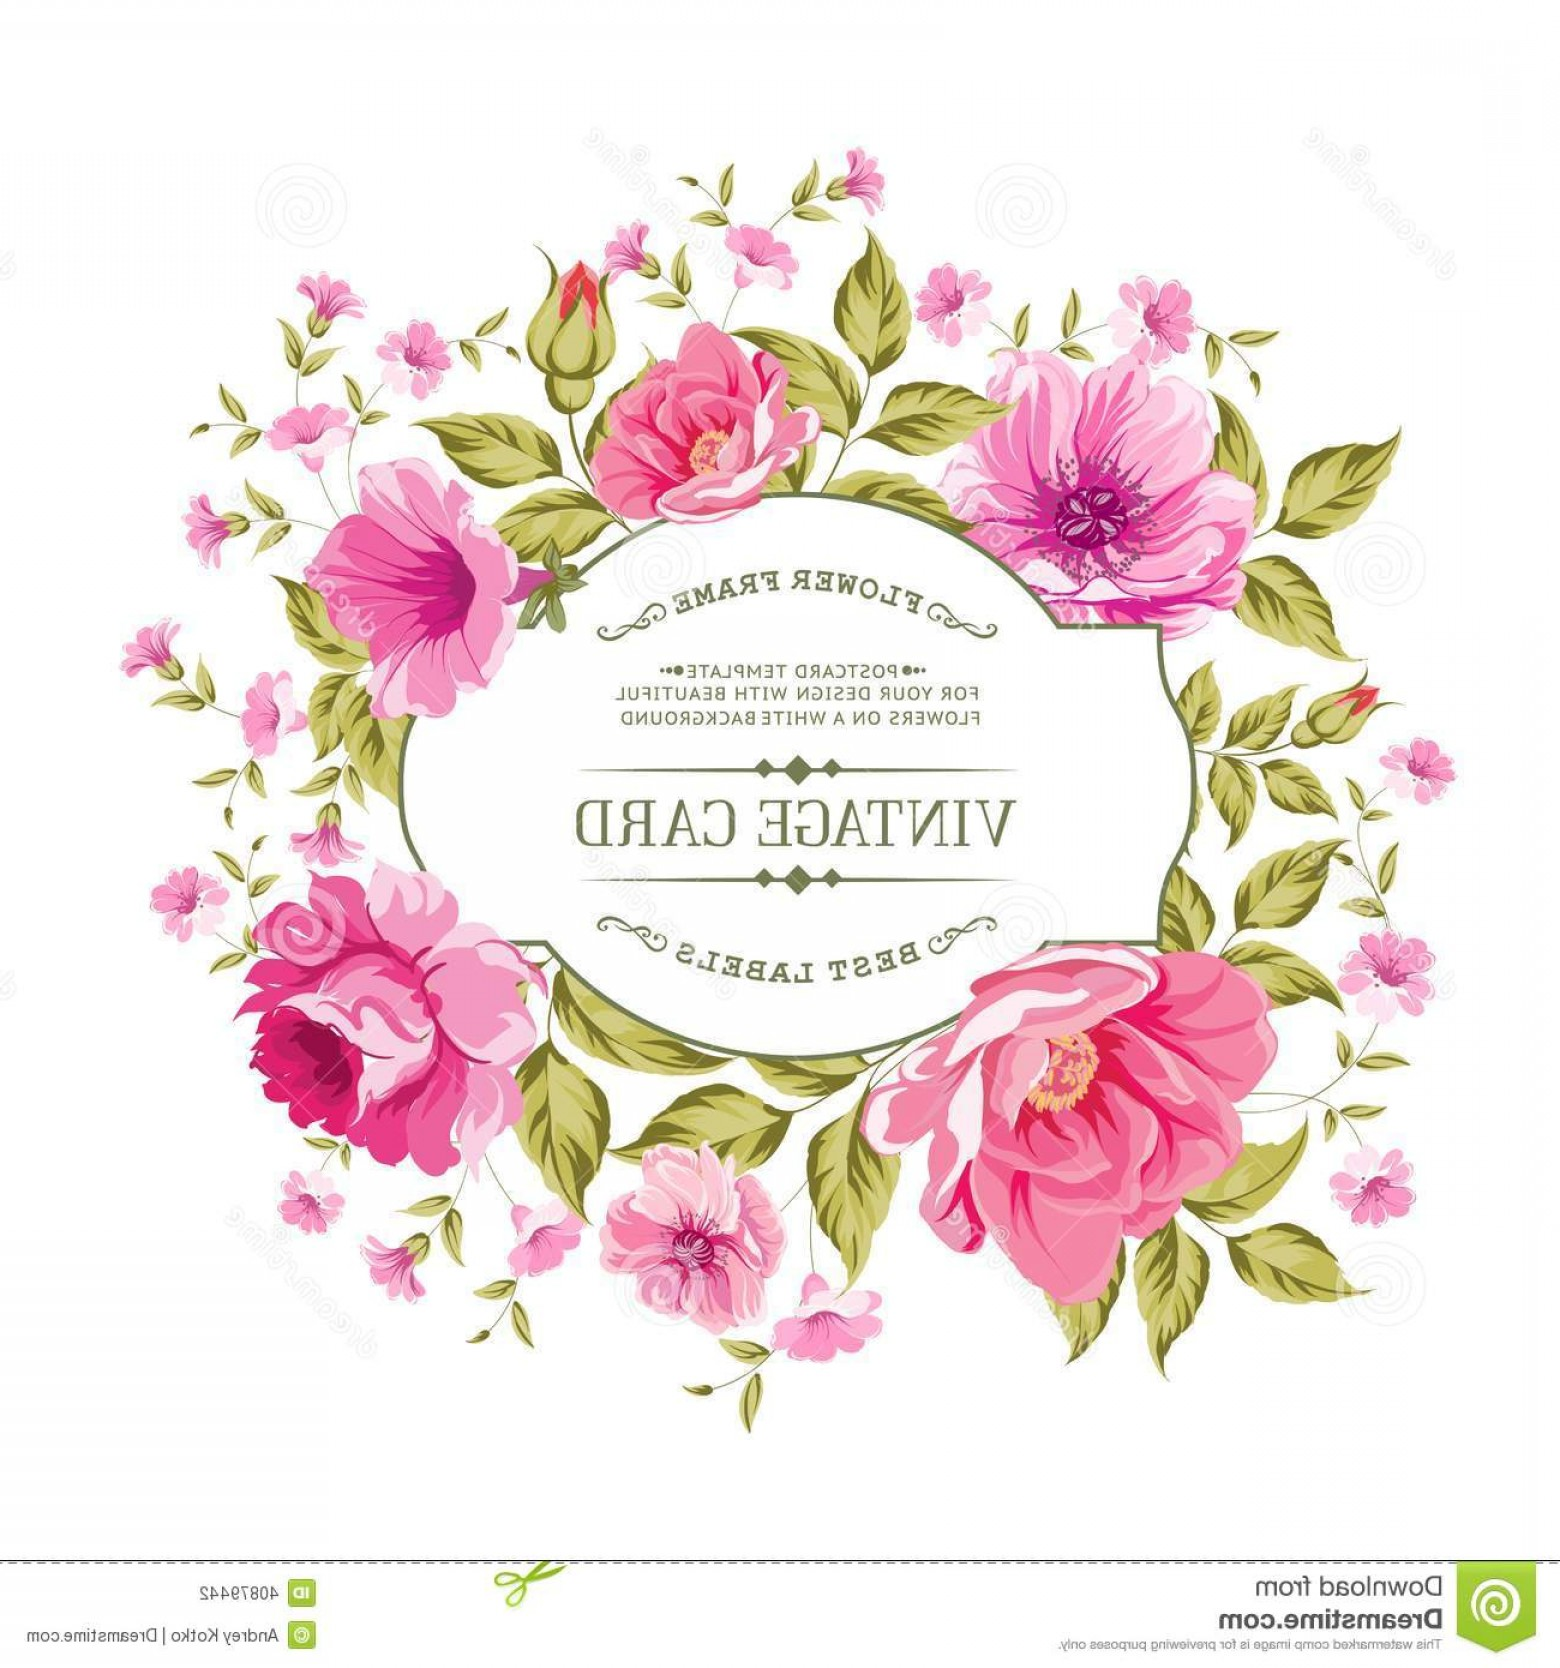 Pink Peony Vector: Stock Photography Luxurious Color Peony Pattern Vintage Card Vector Illistration Image